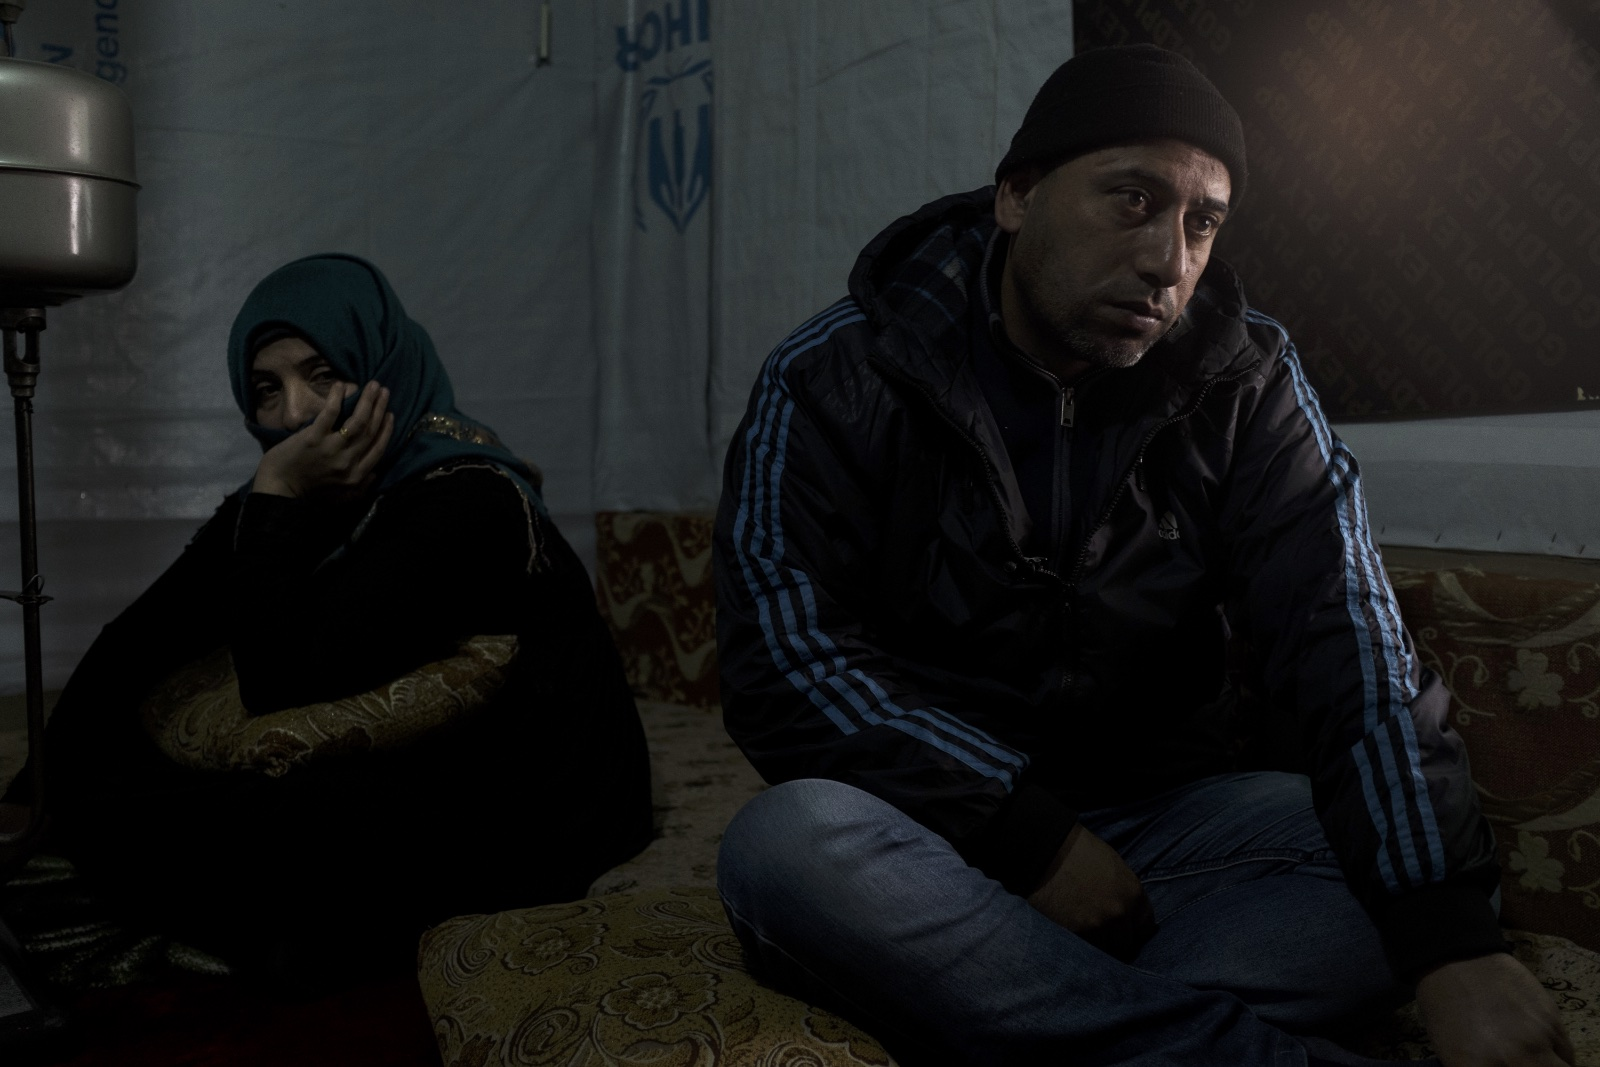 Abu Mohammad (right), sits with his wife, Um Mohammad (left) in their improvised tented settlement in the Bekaa Valley. Out of fear for their teenaged daughter's safety, Abu Mohammad arranged for her to be married at the age of 13. But their daughter's husband turned out to be abusive, and she is not allowed to move or live freely. (Christopher Lee/GroundTruth)